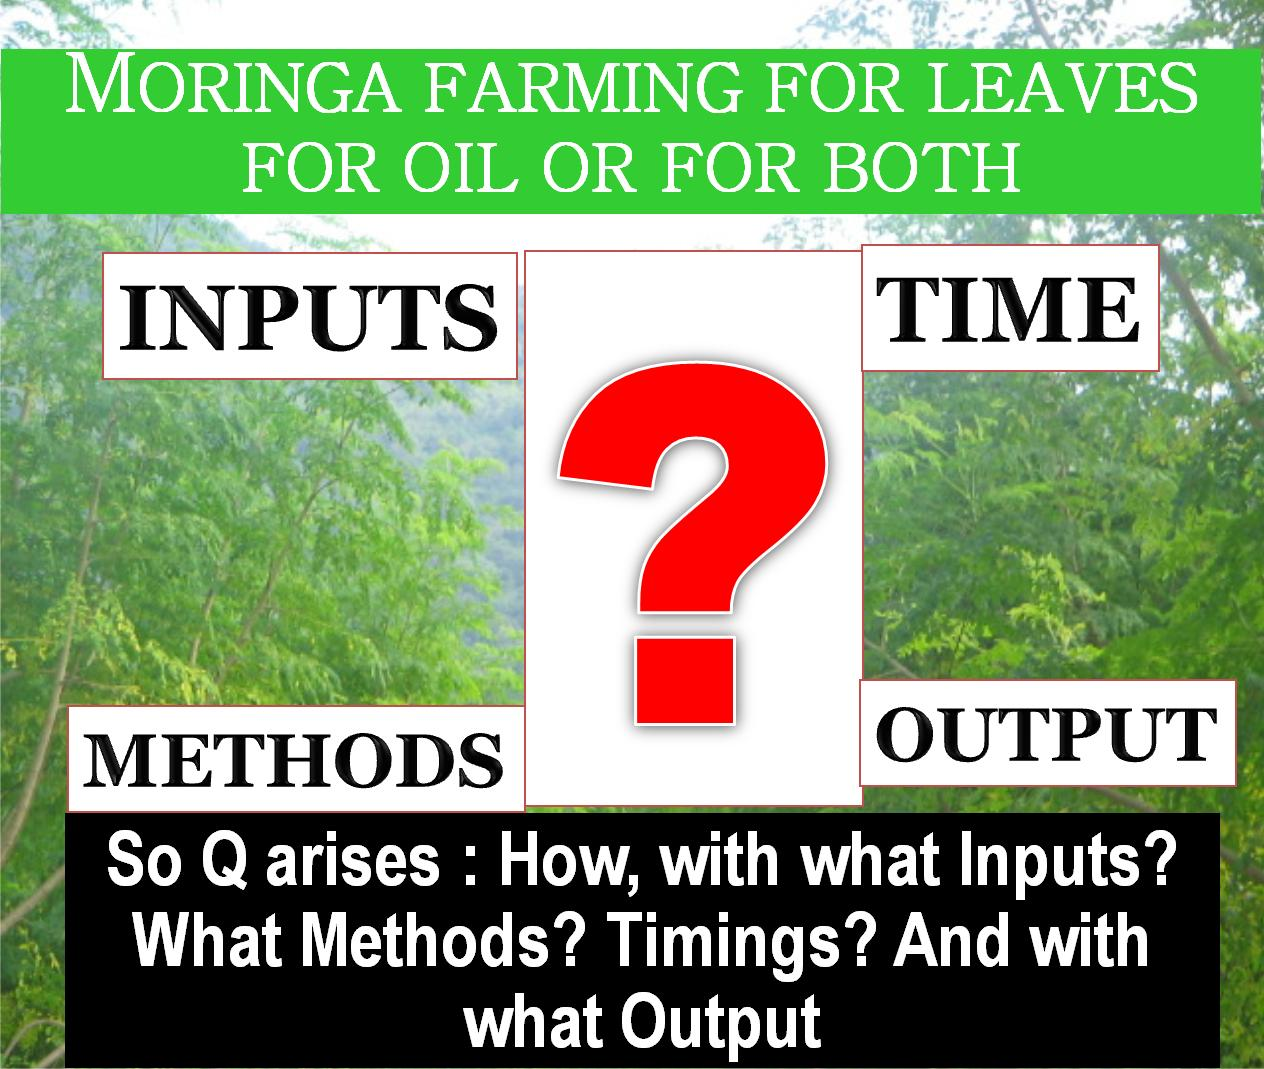 Moringa training